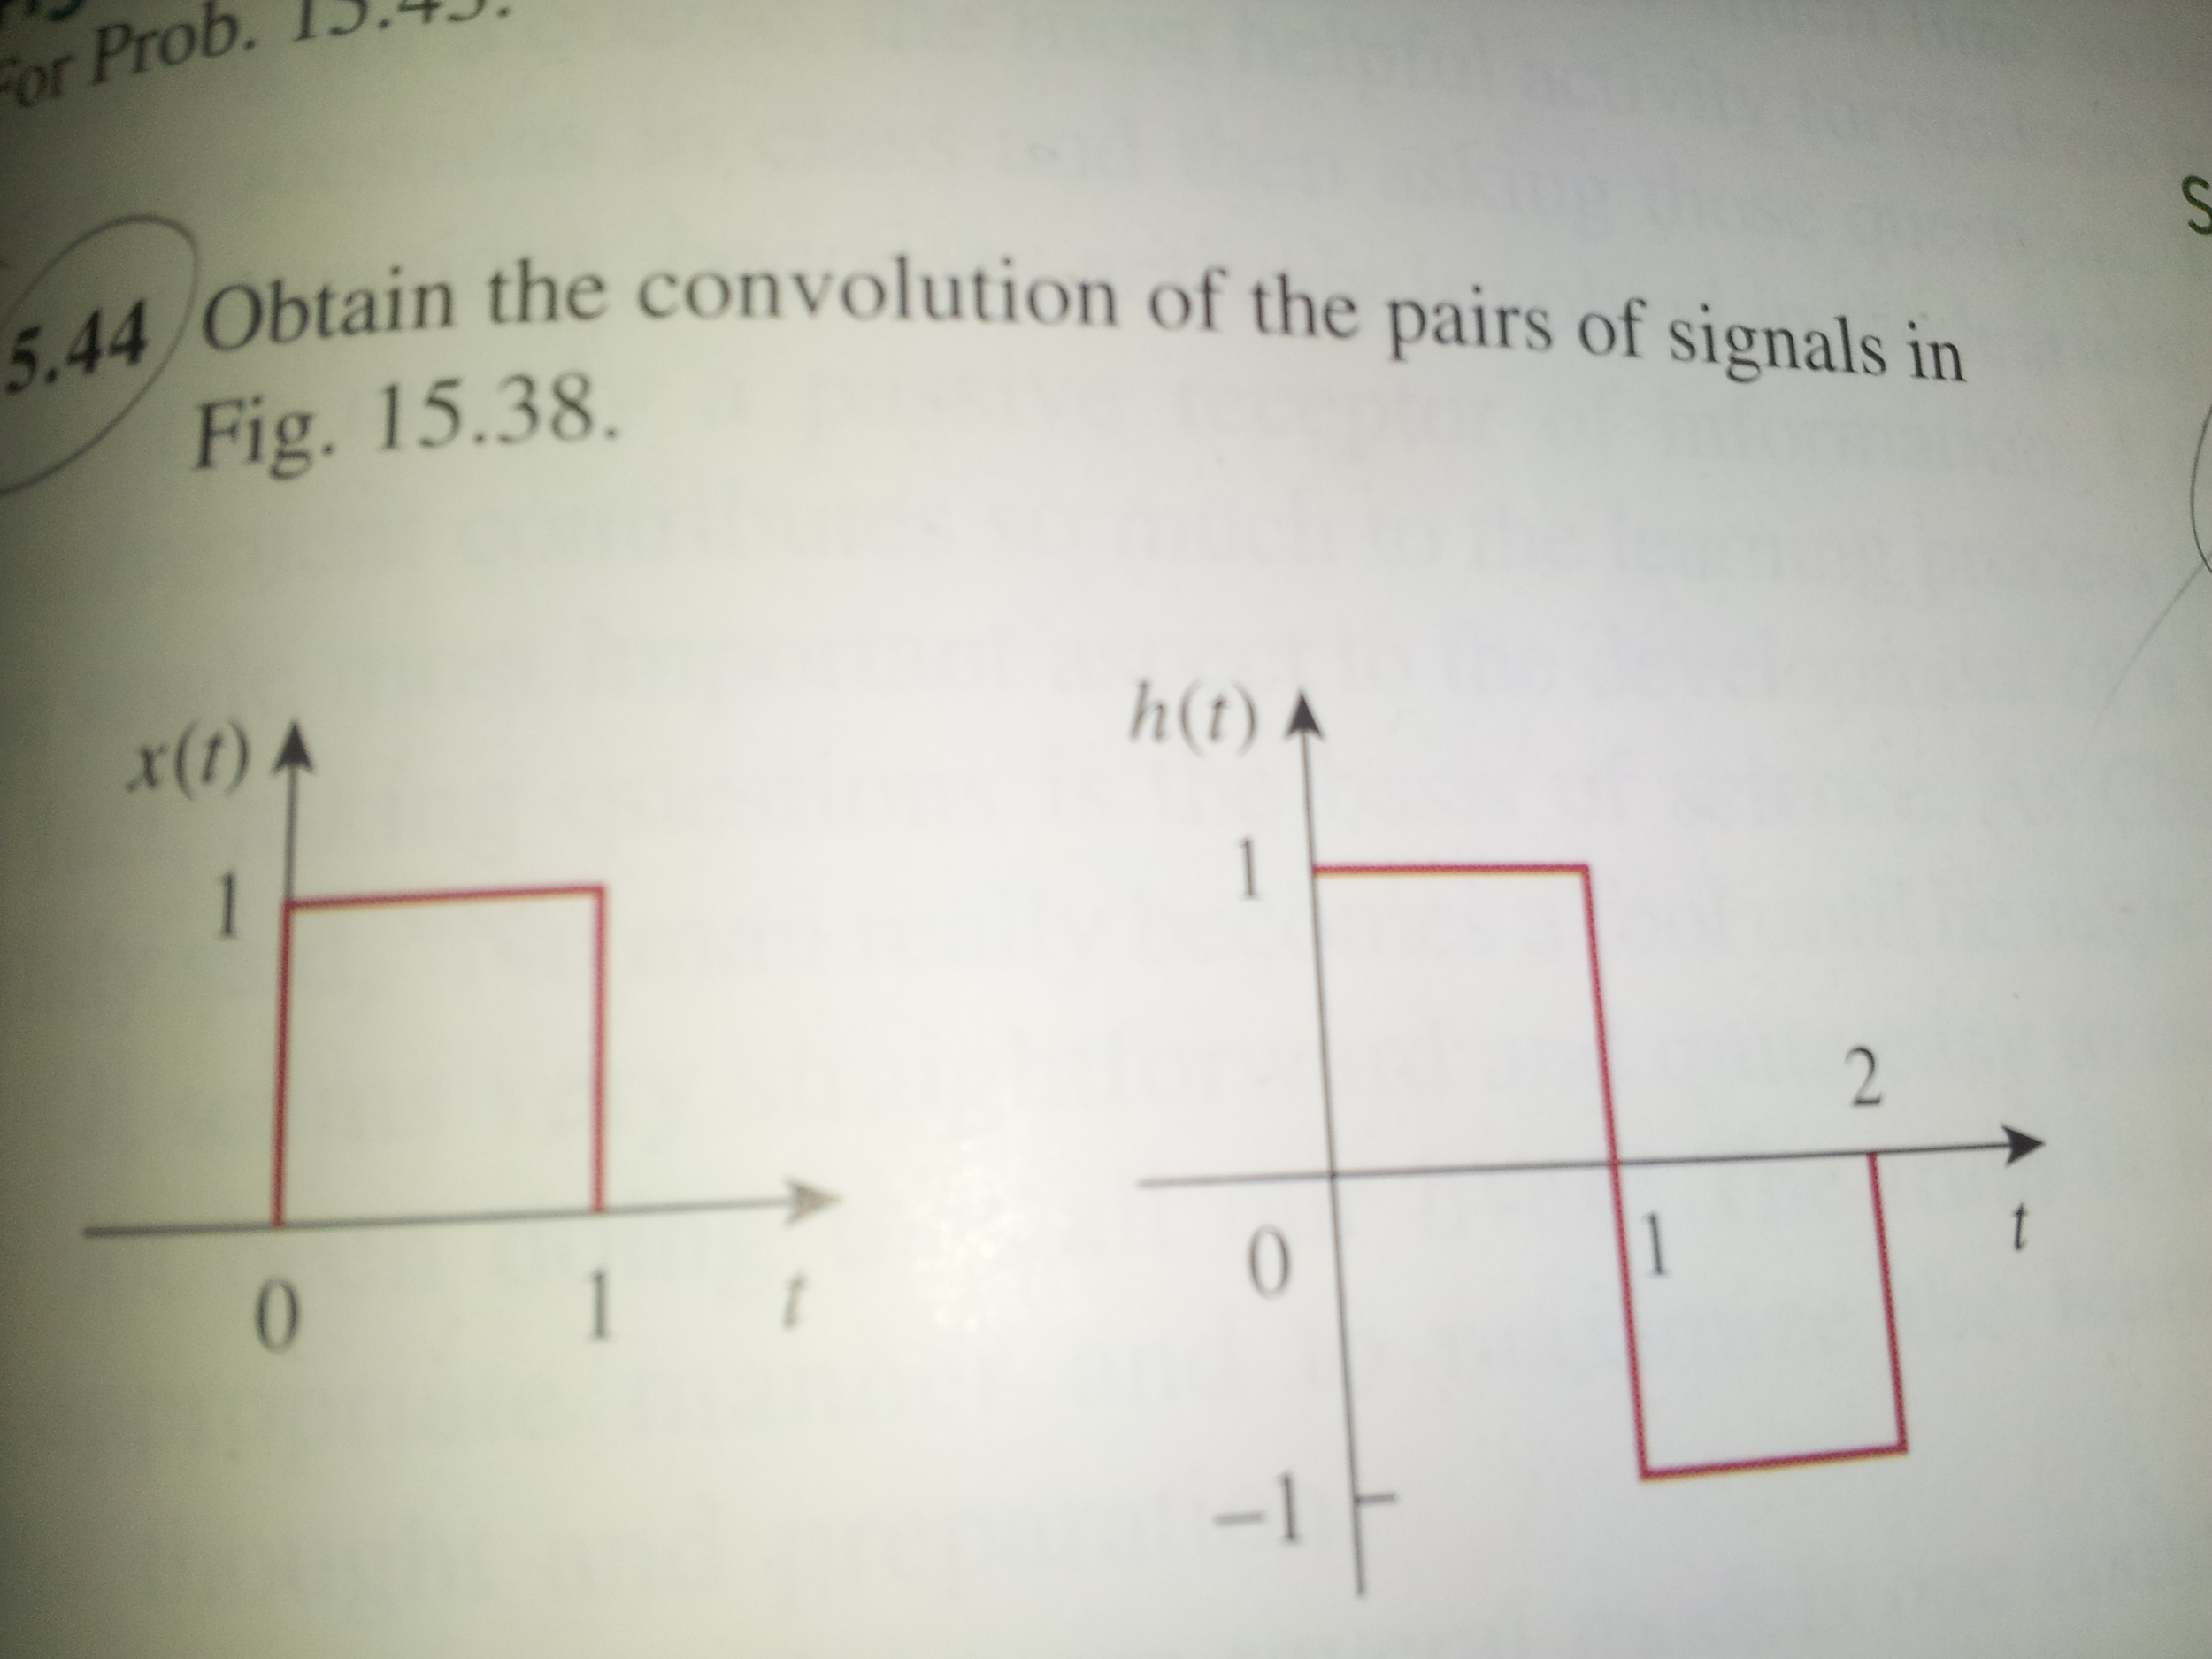 Obtain the convolution of the pairs of signals in